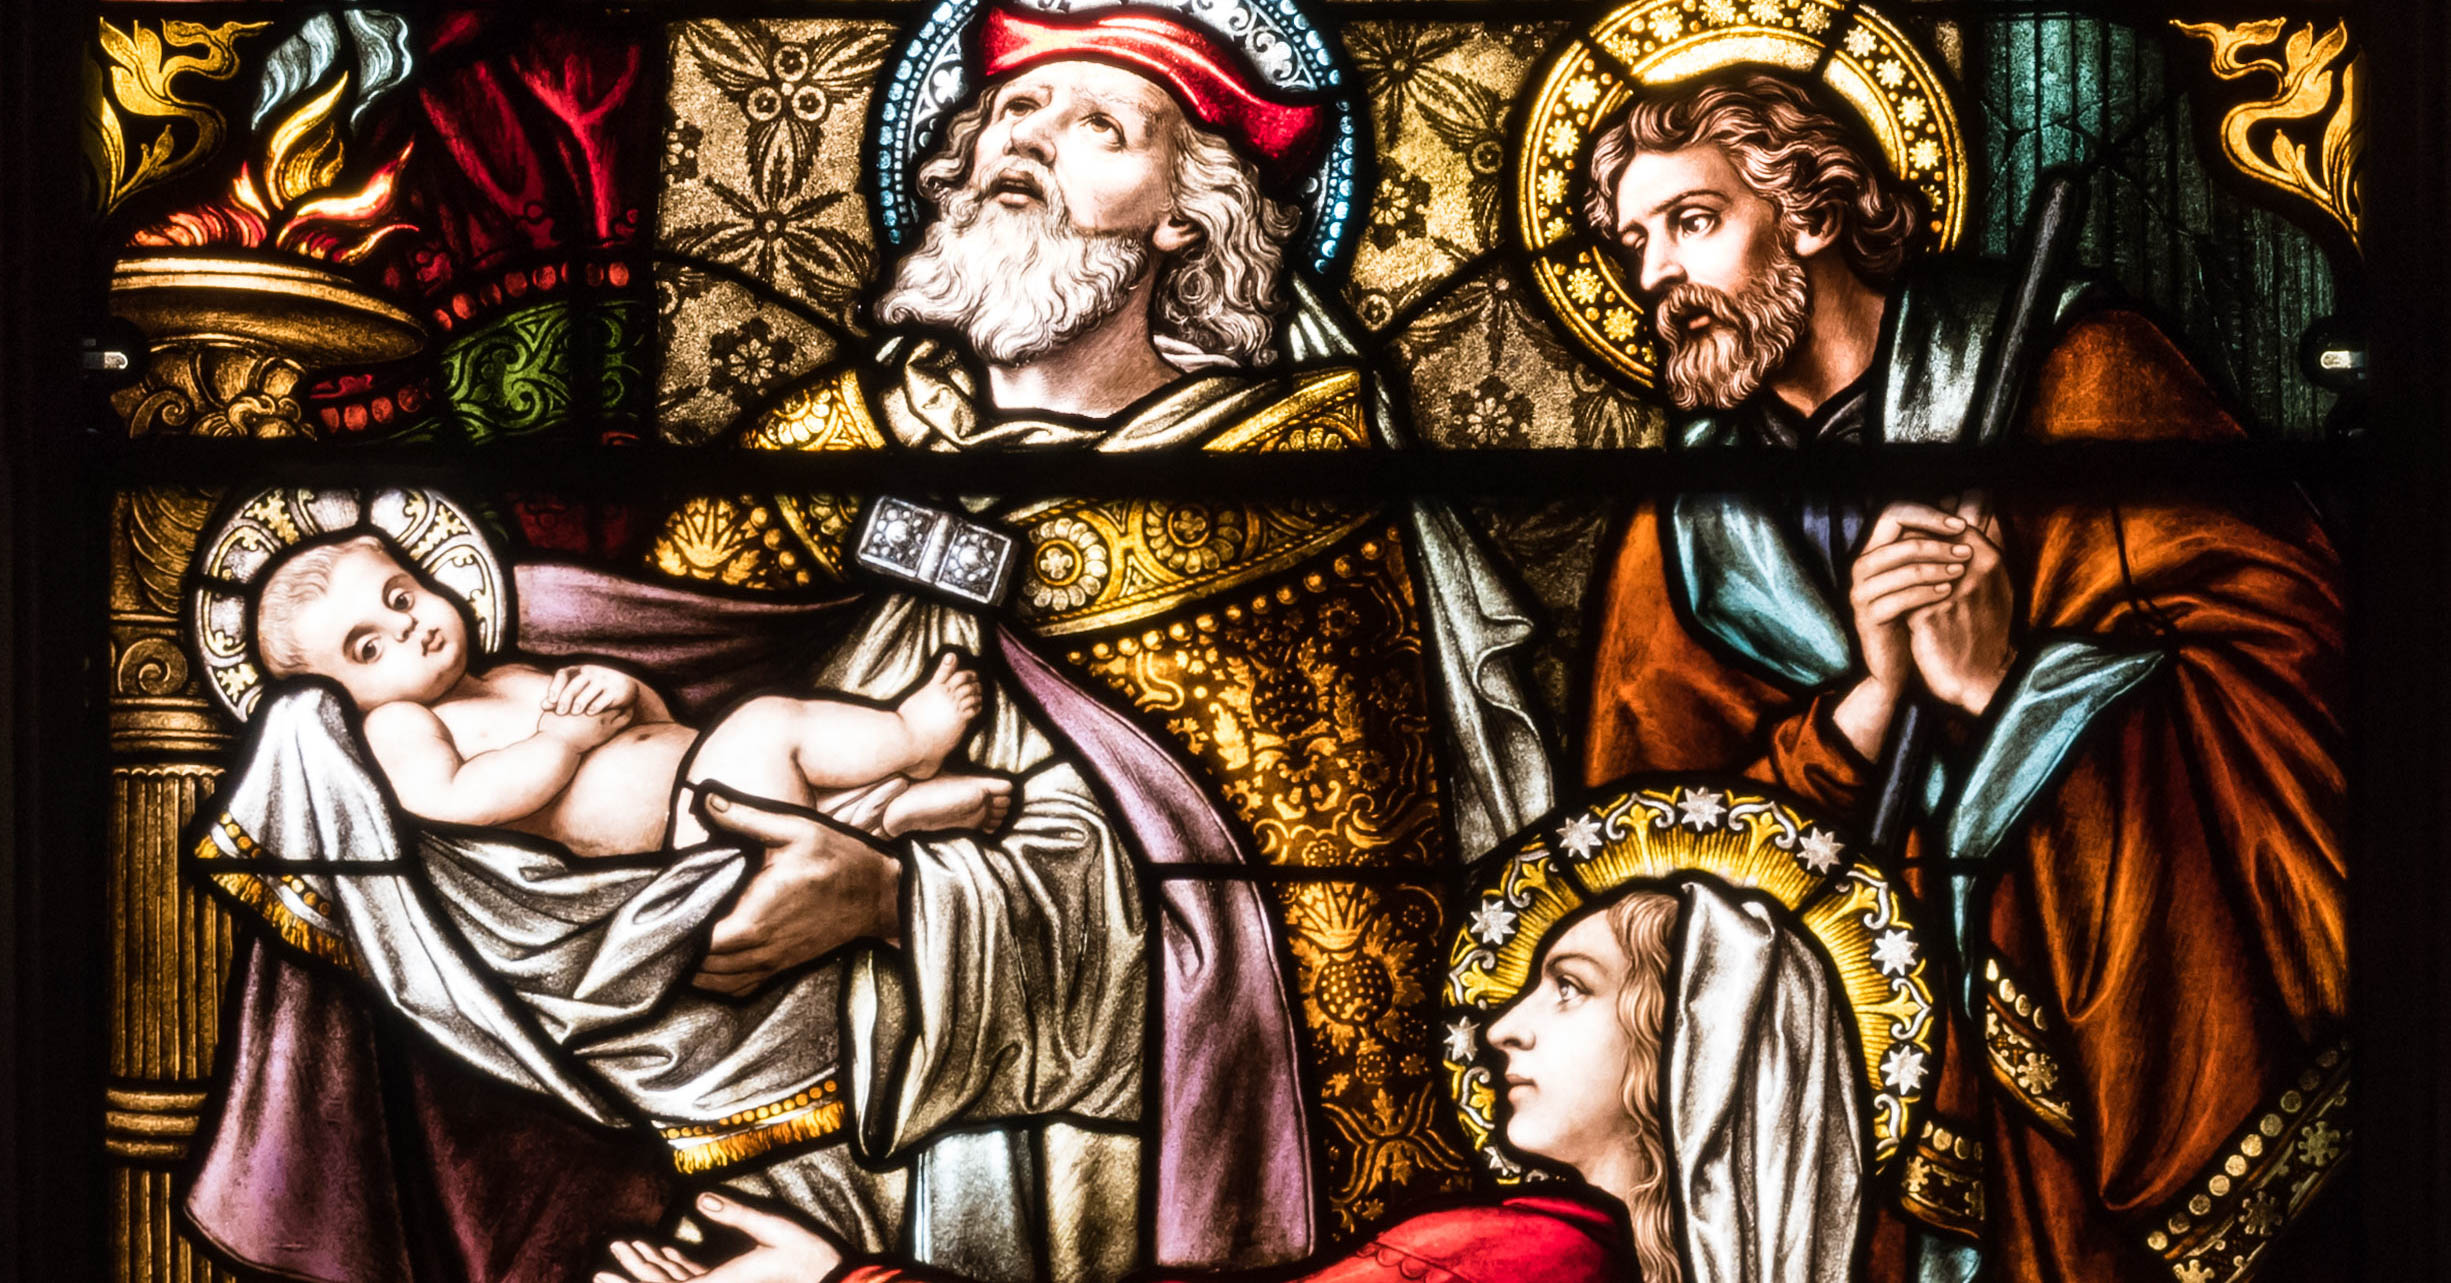 The shining example of the Holy Family of Nazareth - Today's